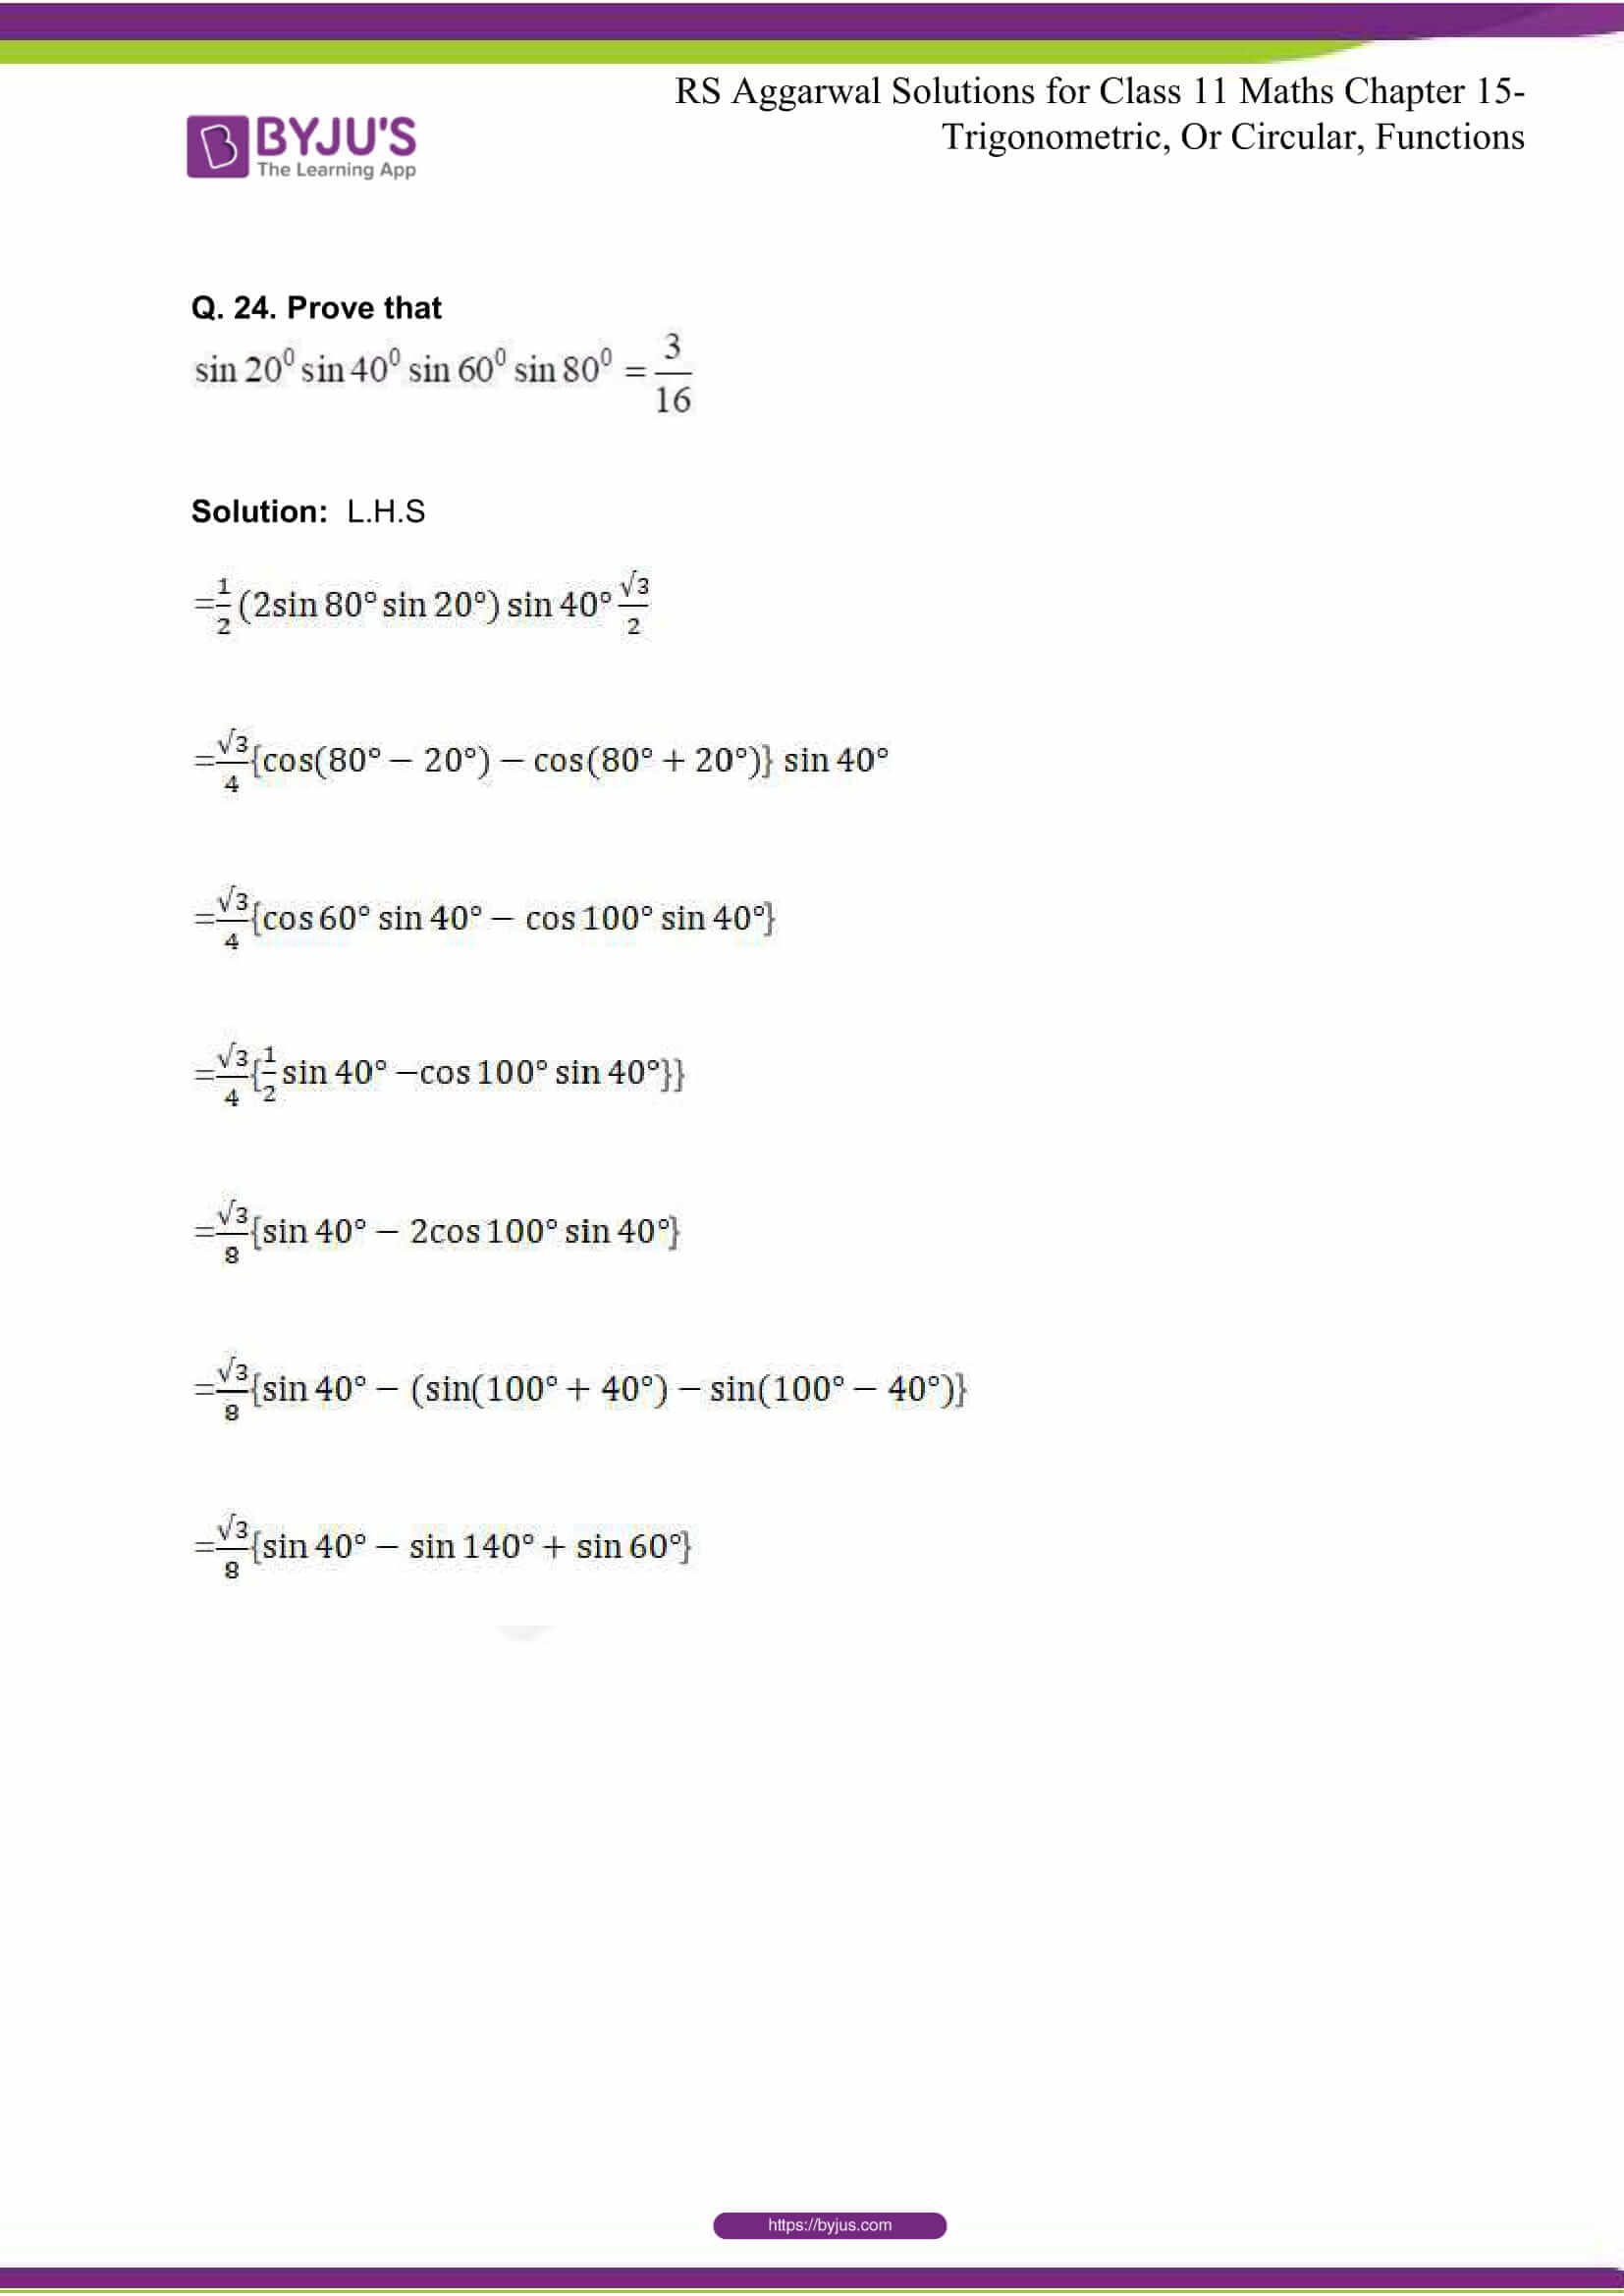 rsaggarwal solutions class 11 maths chapter 15 072